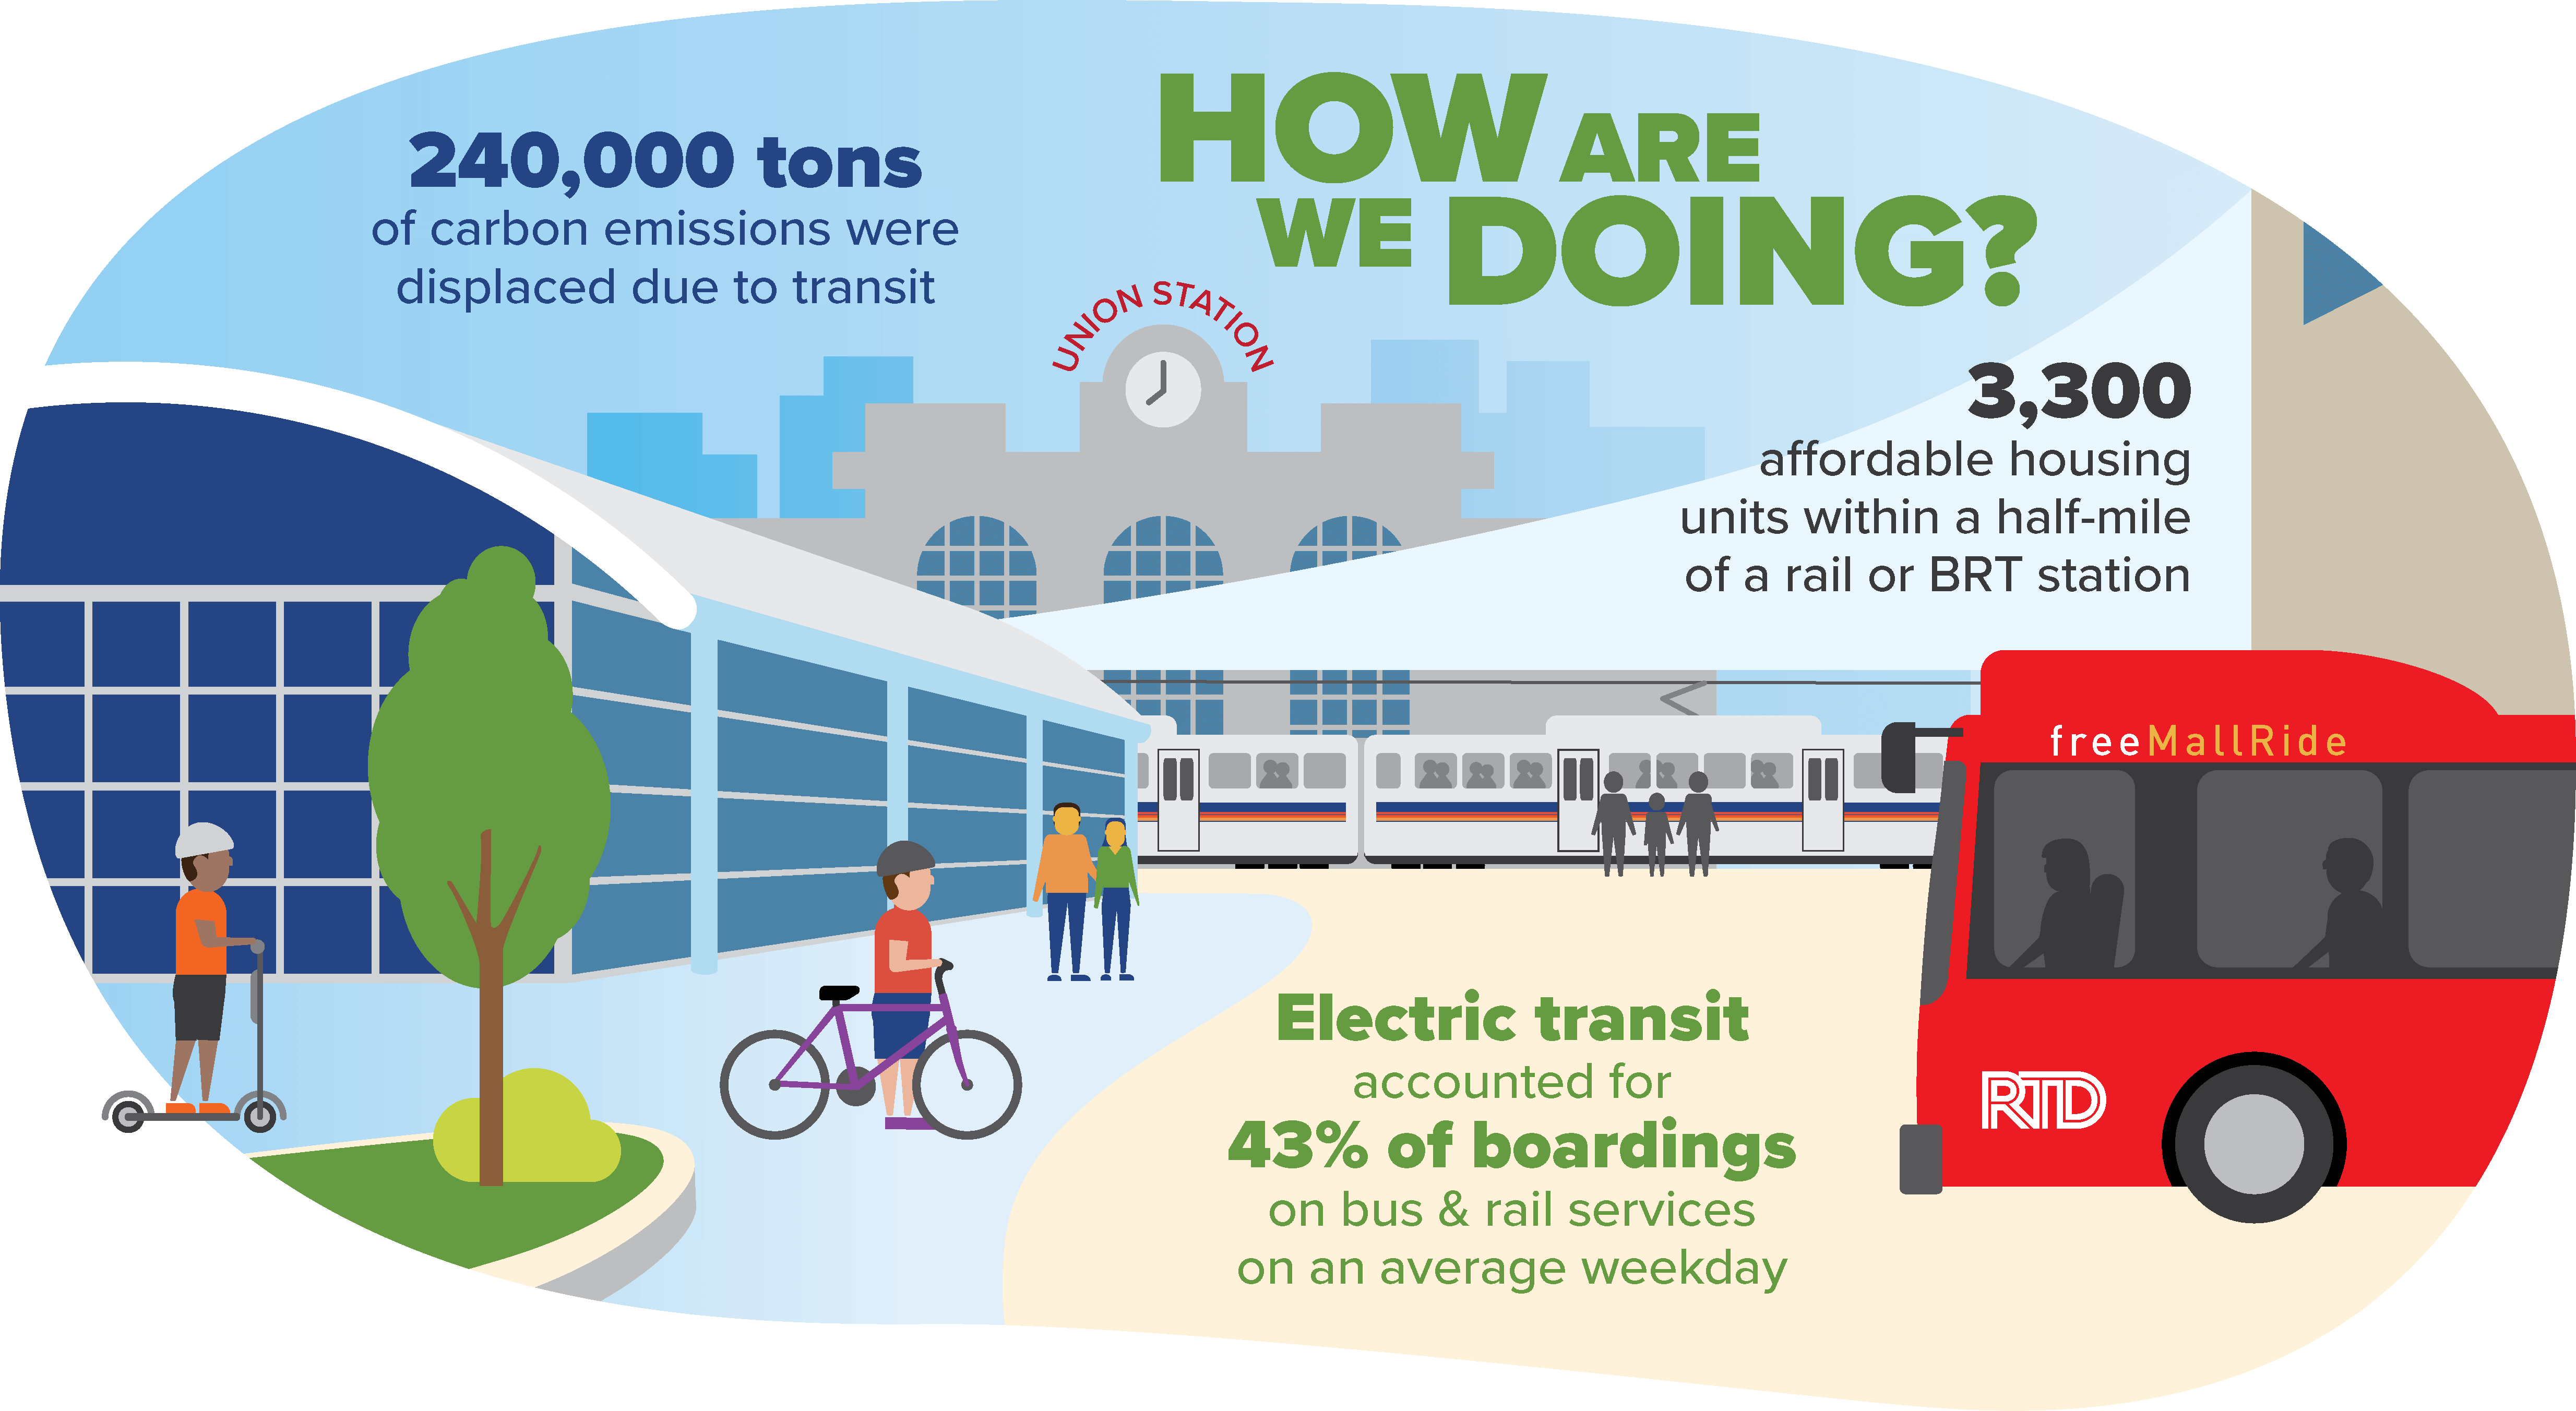 Infographic: how are we doing? In 2019, over 240,000 tons of carbon emissions were avoided due to transit. 3,300 affordable housing units with a half mile of a rail or BRT station. Electric transit accounted for 43% of boardings on bus & rail services on an average weekday.